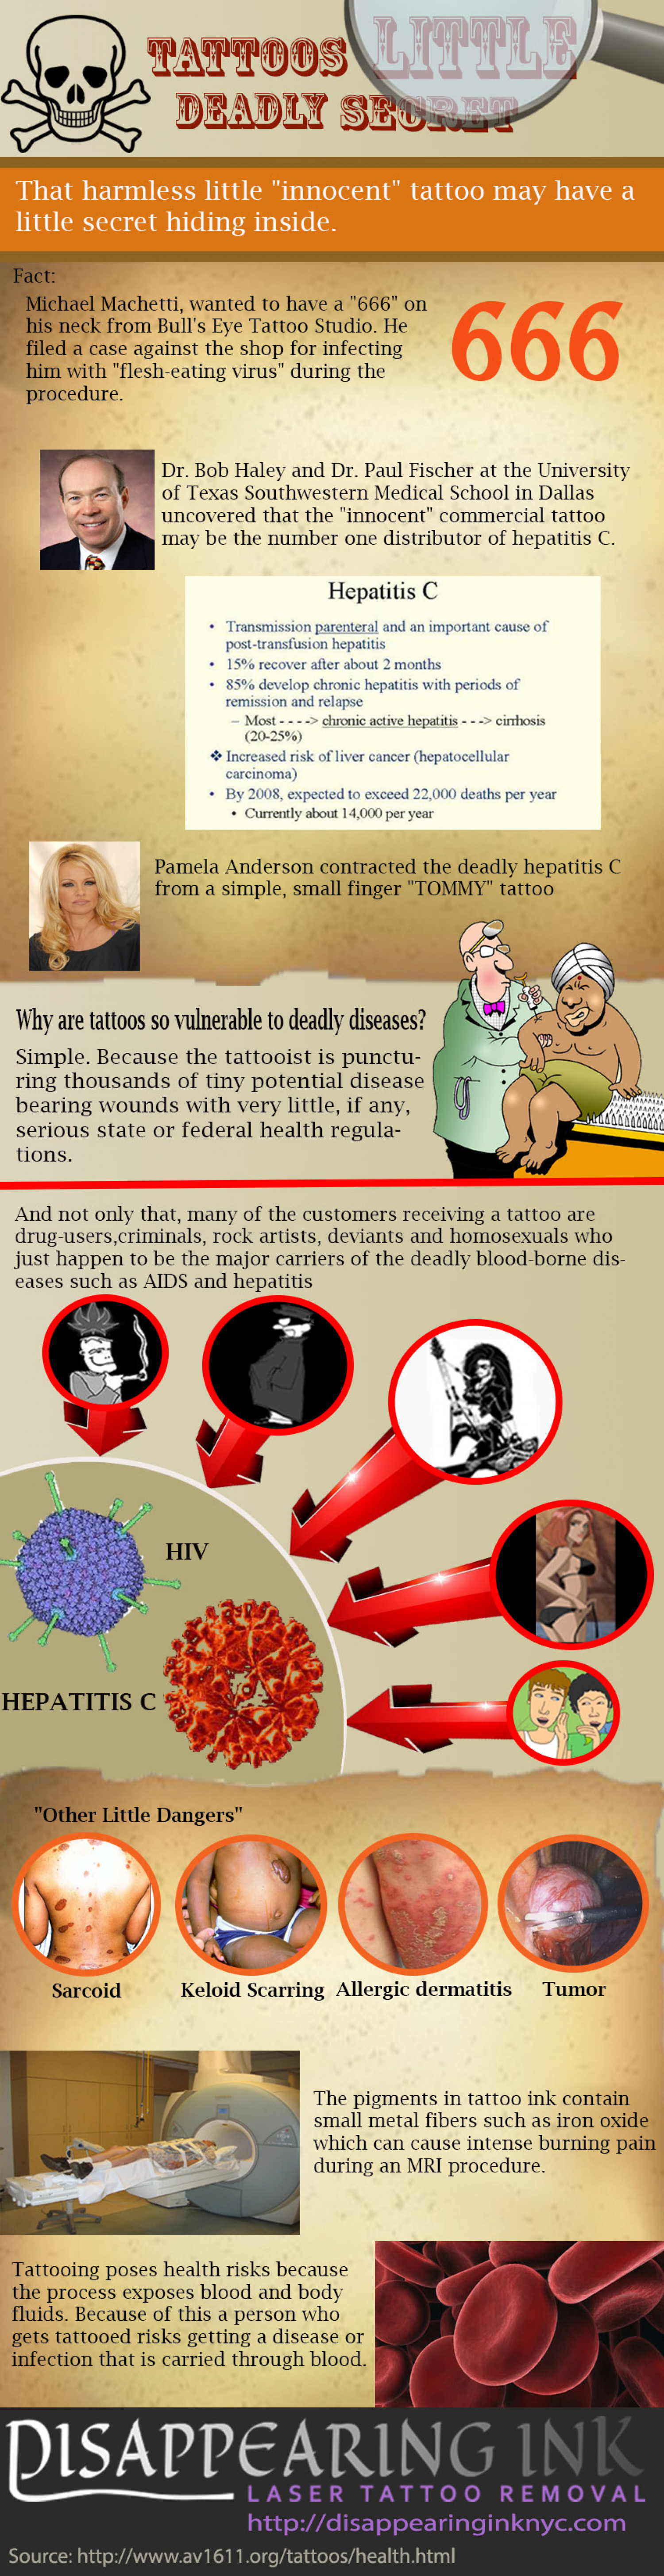 Tattoos Deadly Little Secrets Infographic